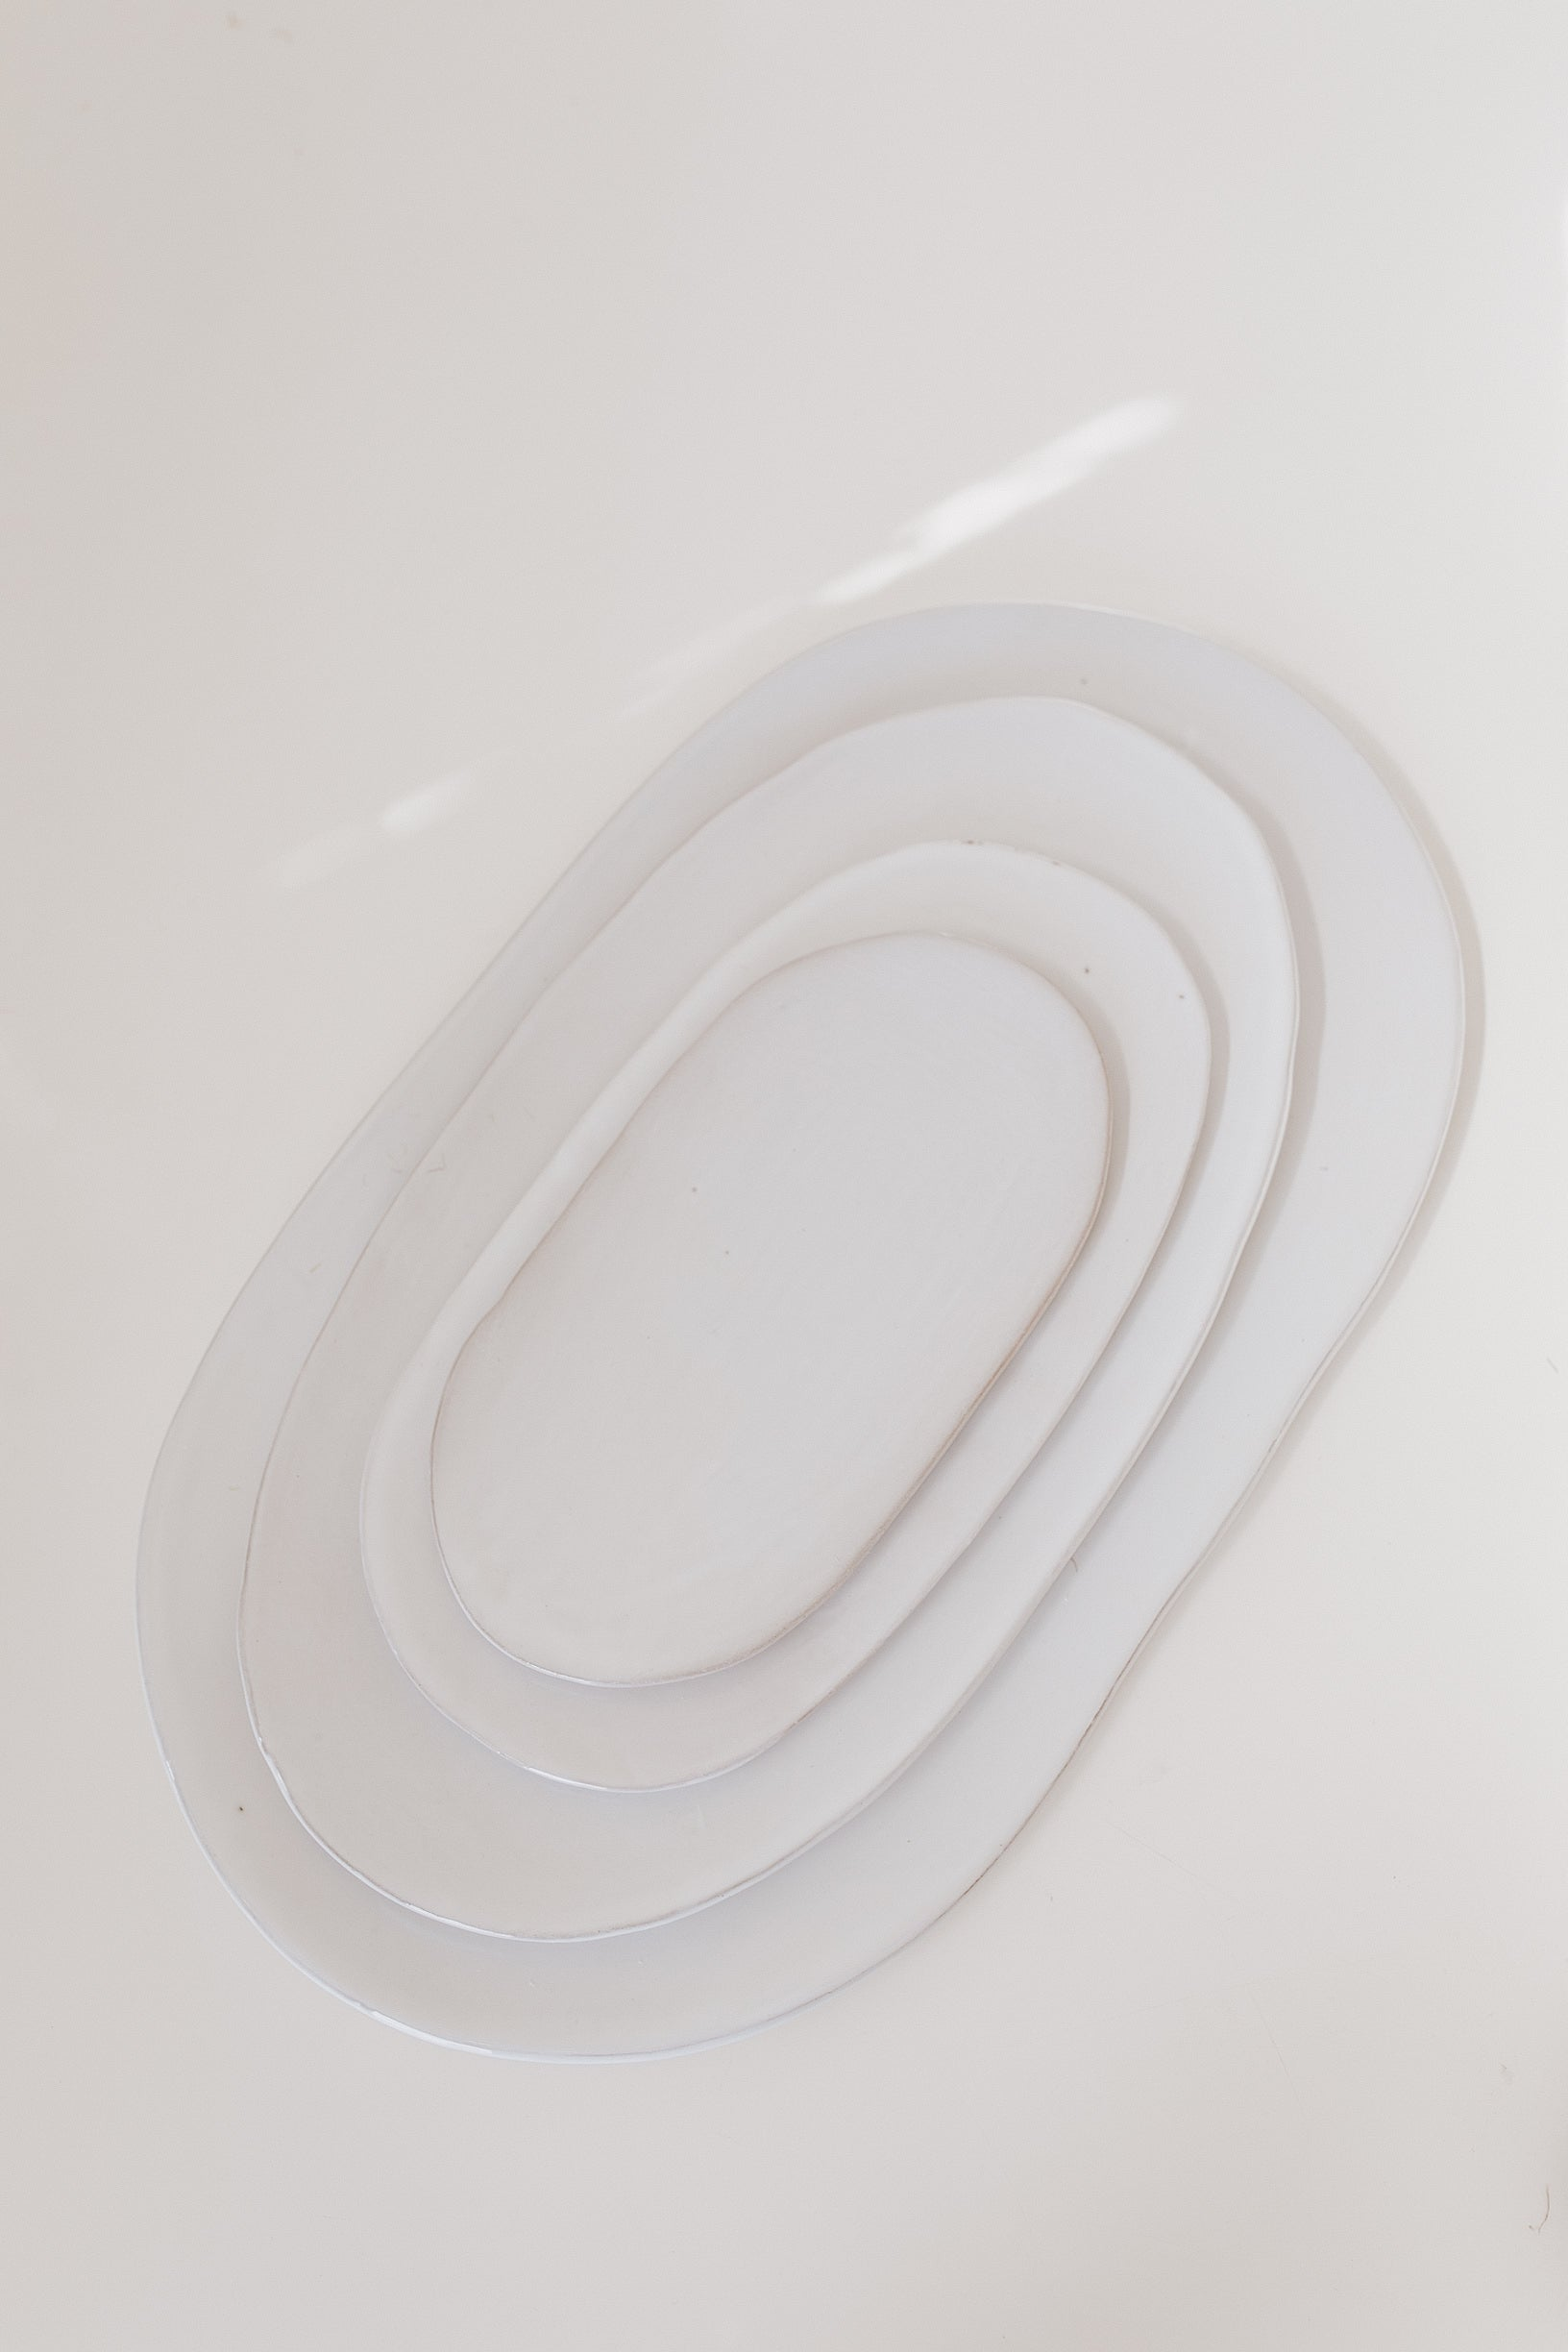 Nol Oval Plate - 4 Sizes